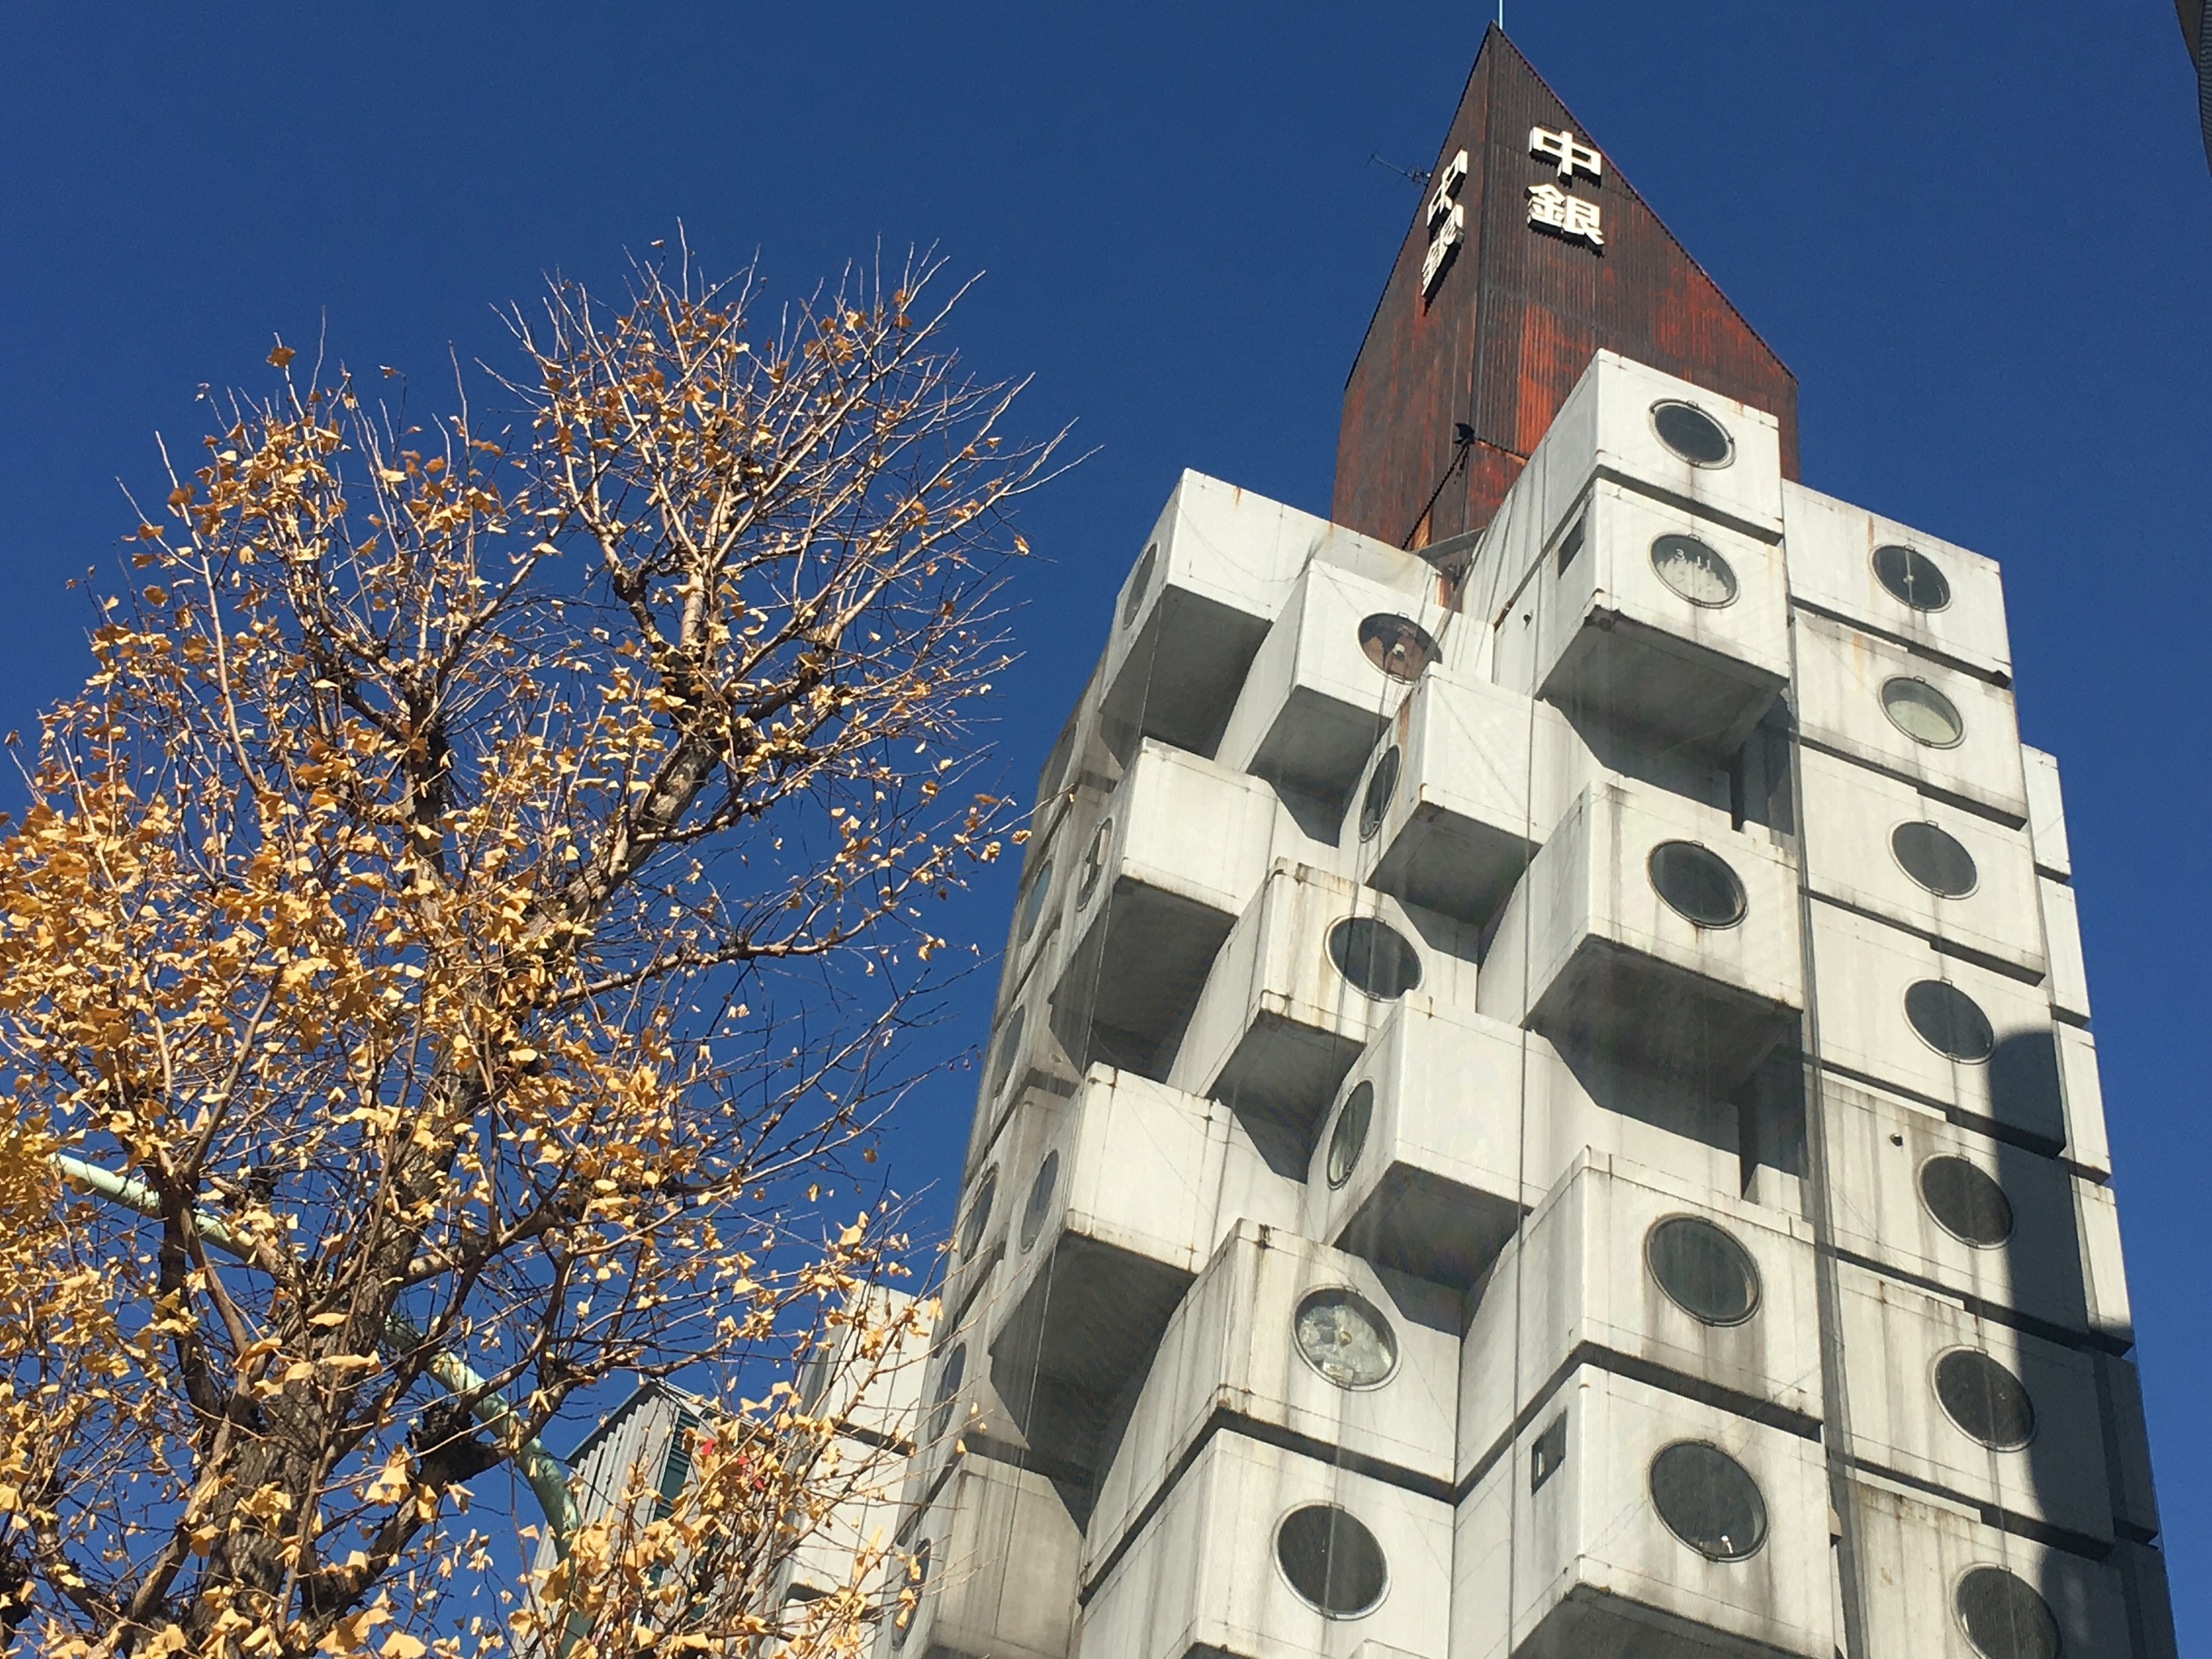 The futuristic Nakagin Capsule Tower designed by Kisho Kurokawa in 1972 in Tokyo's Shimbashi district.